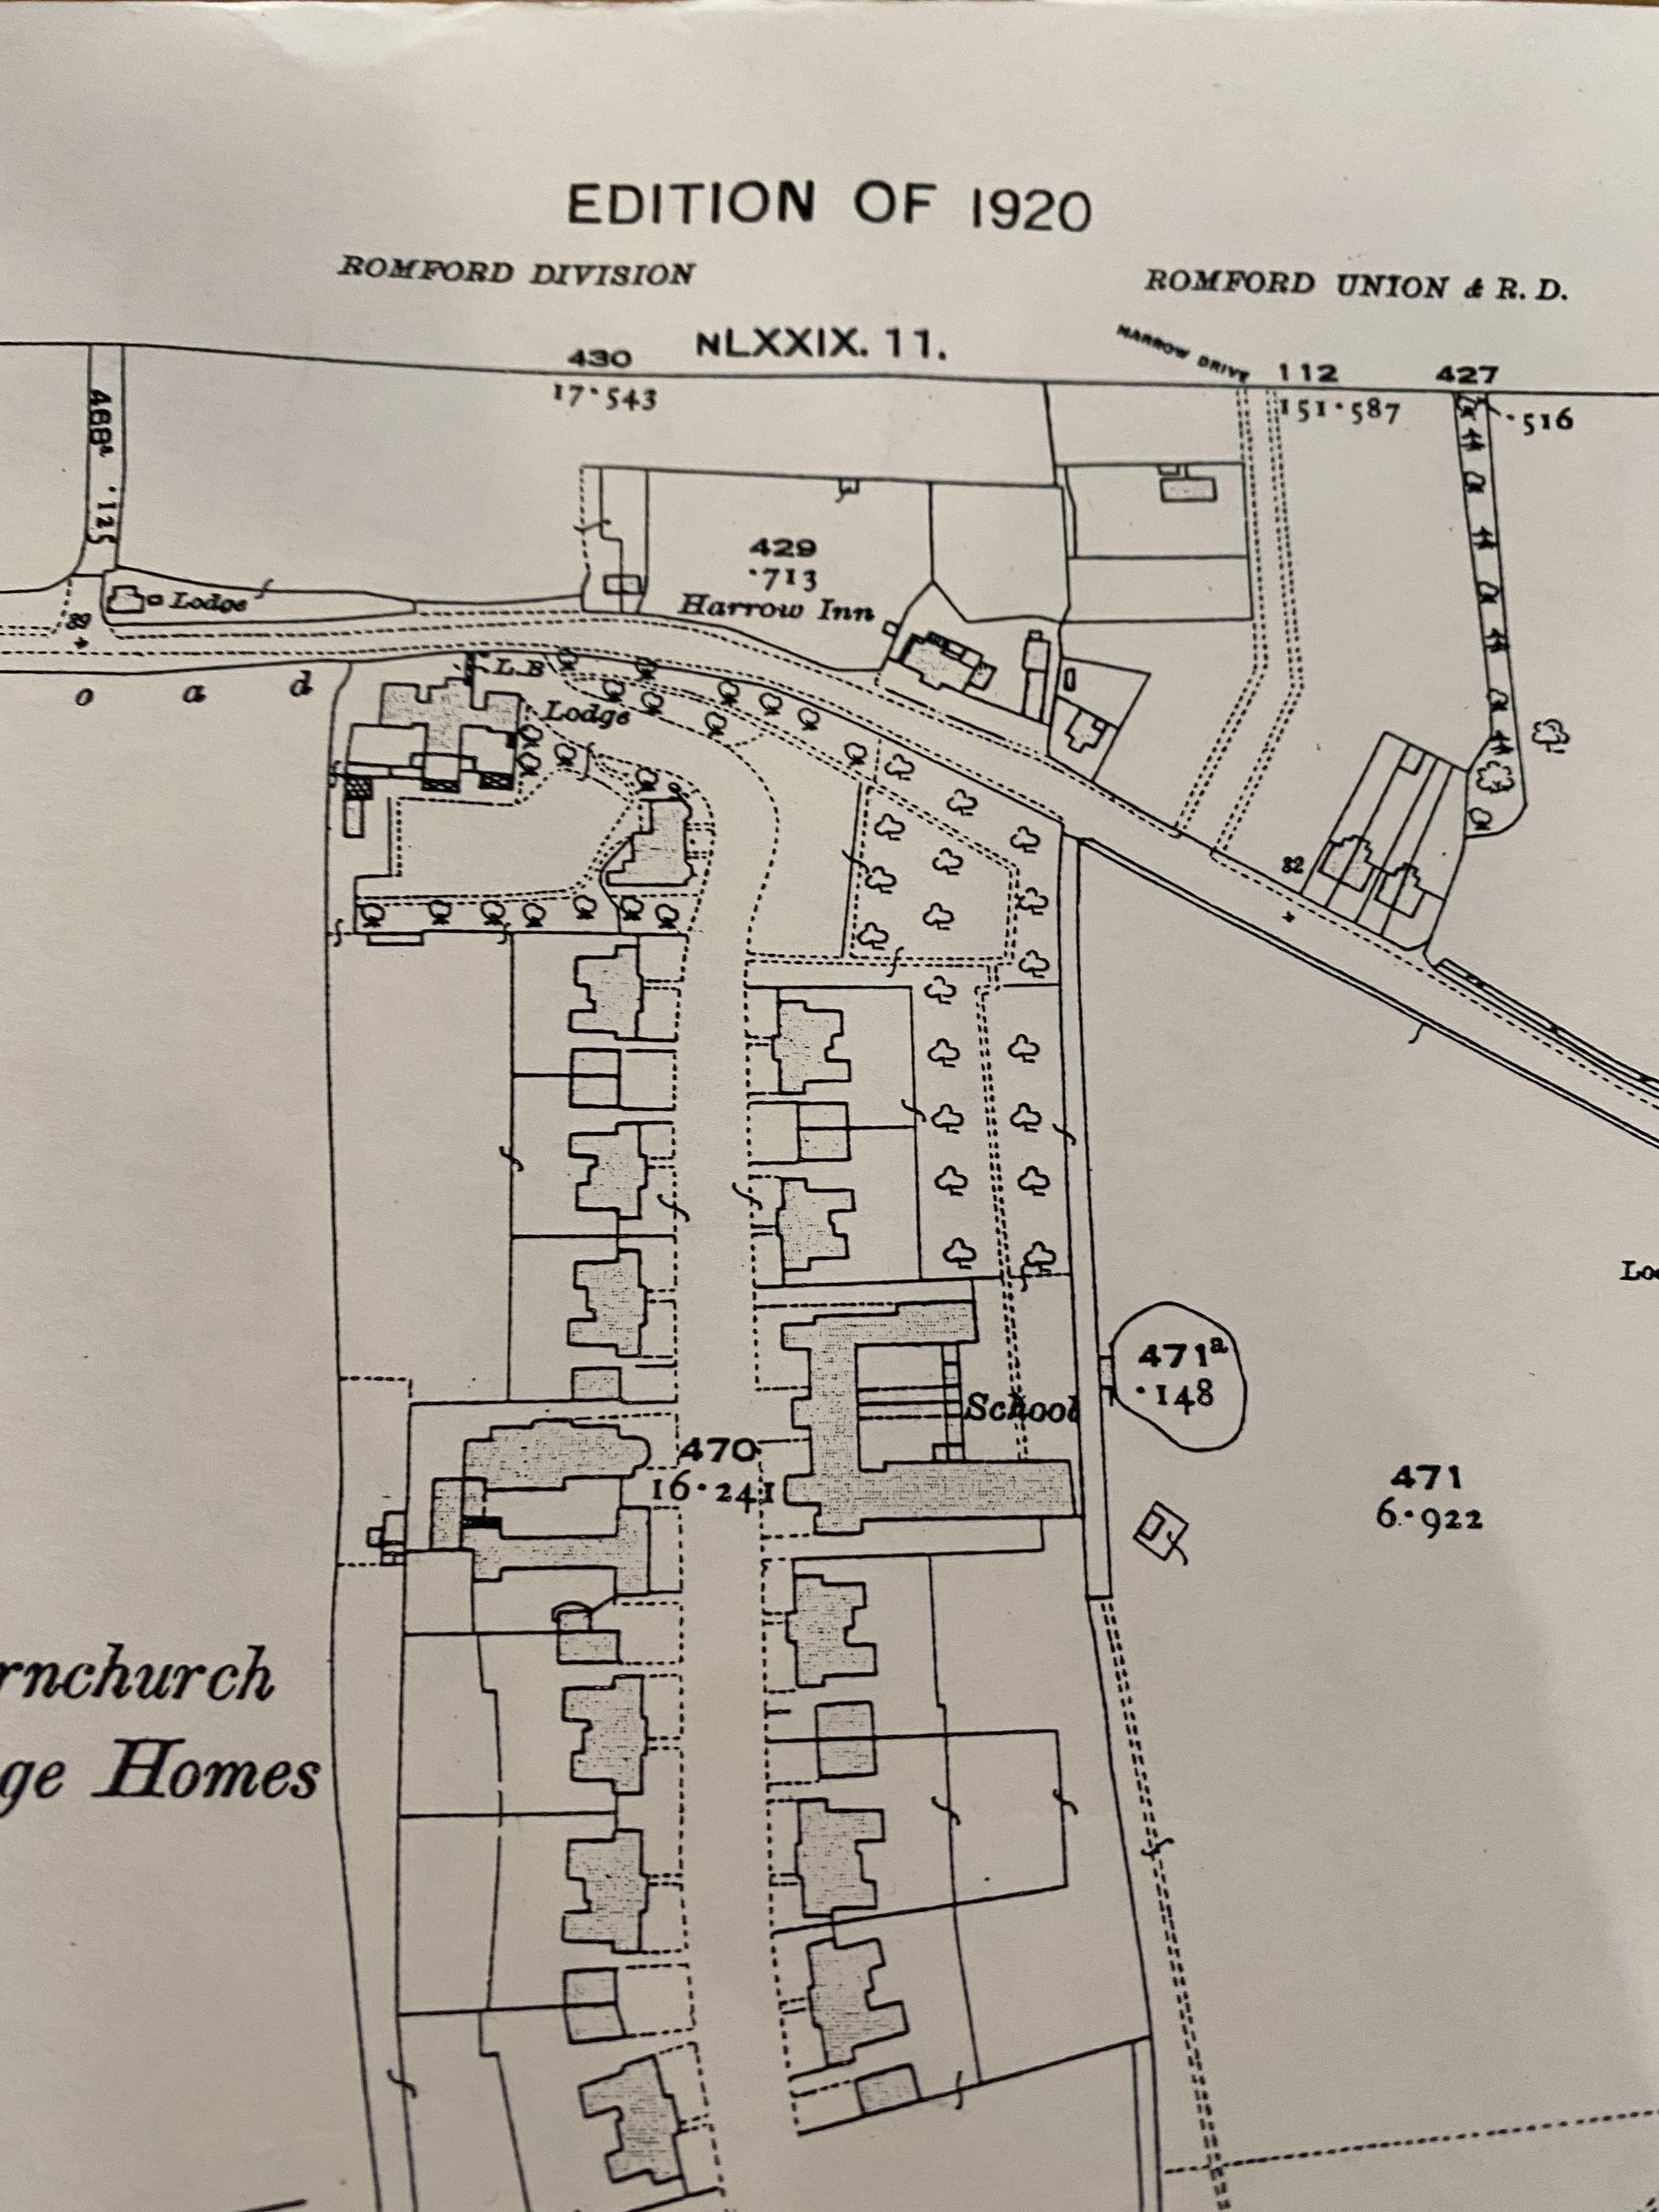 Superseeded Edition, Edition 1920 Essex, Hornchurch ordnance map - Image 3 of 6